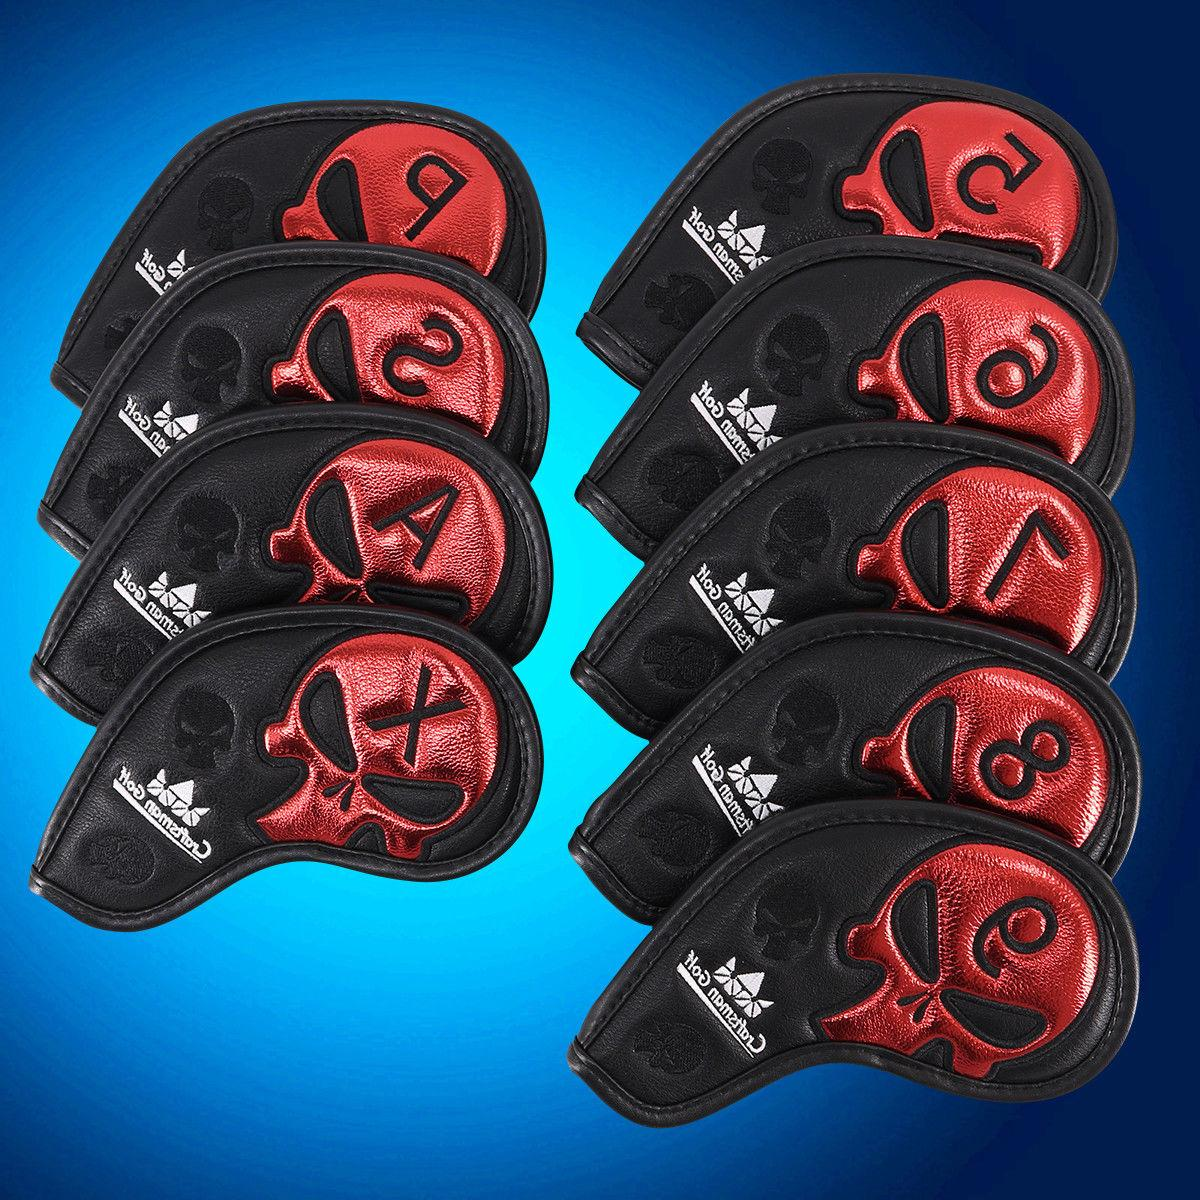 Craftsman Covers Skull Headcovers Titleist 716 #5-Xw